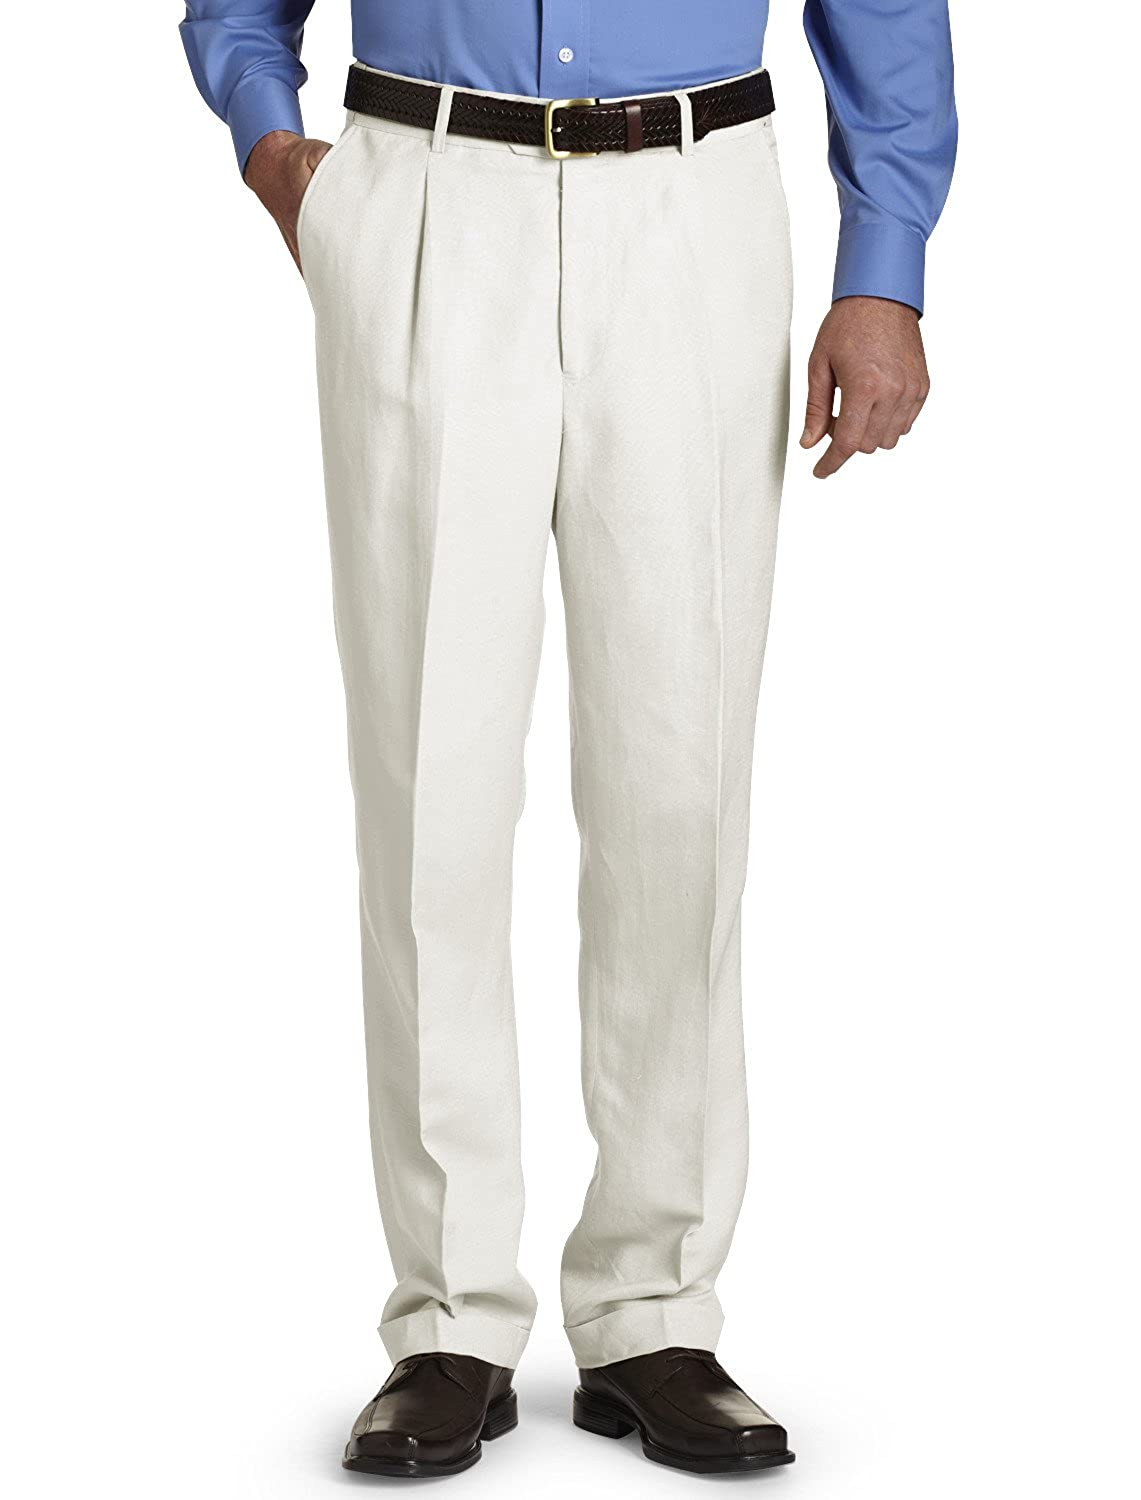 Oak Hill by DXL Big and Tall Waist-Relaxer Pleated Linen Suit Pants